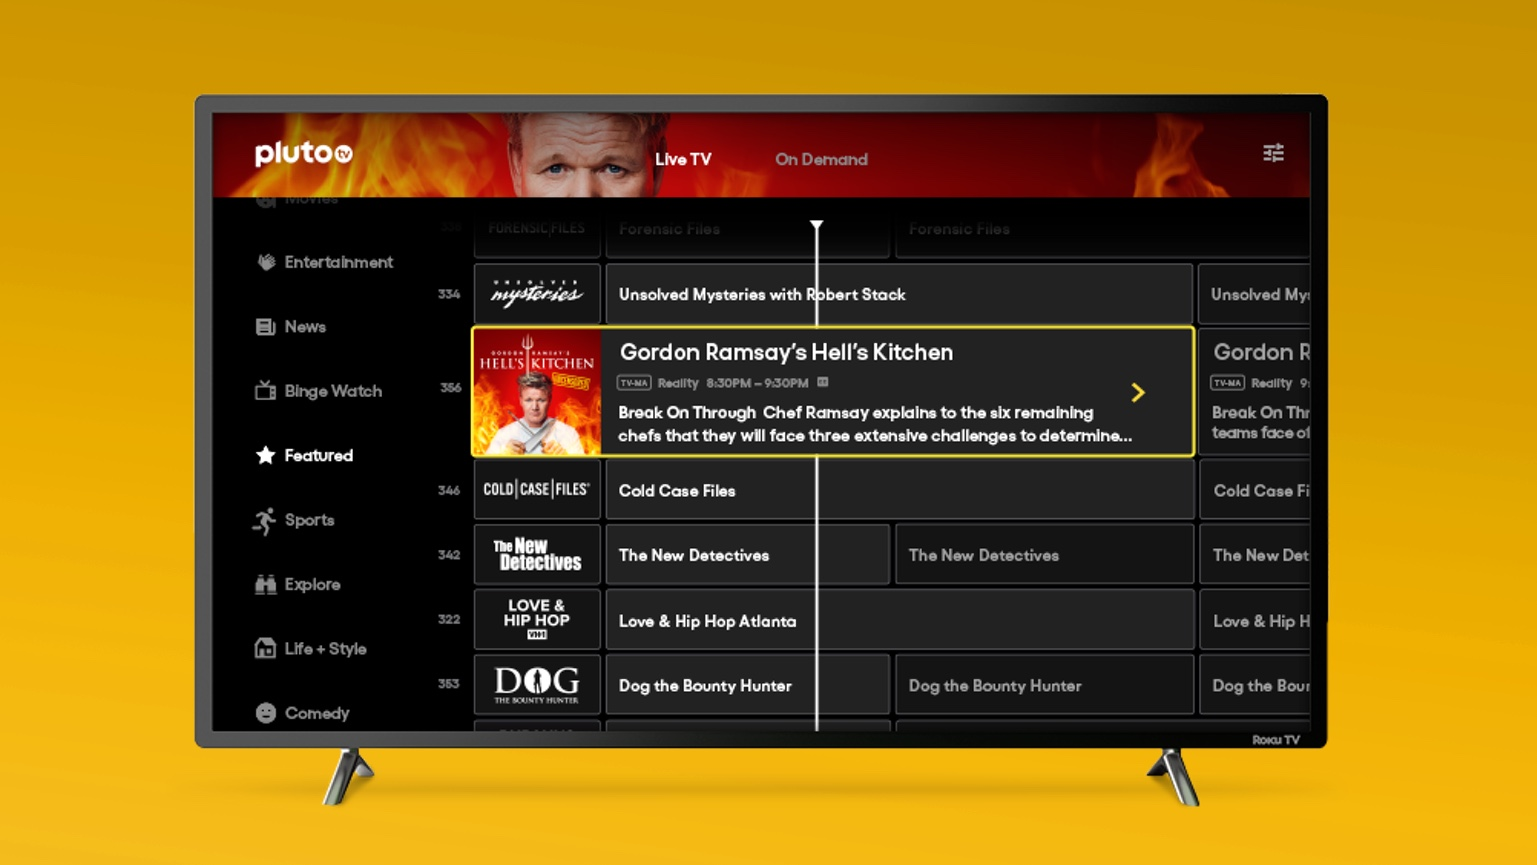 Pluto Tv Guide App Channels Reviews And How To Activate Tom S Guide